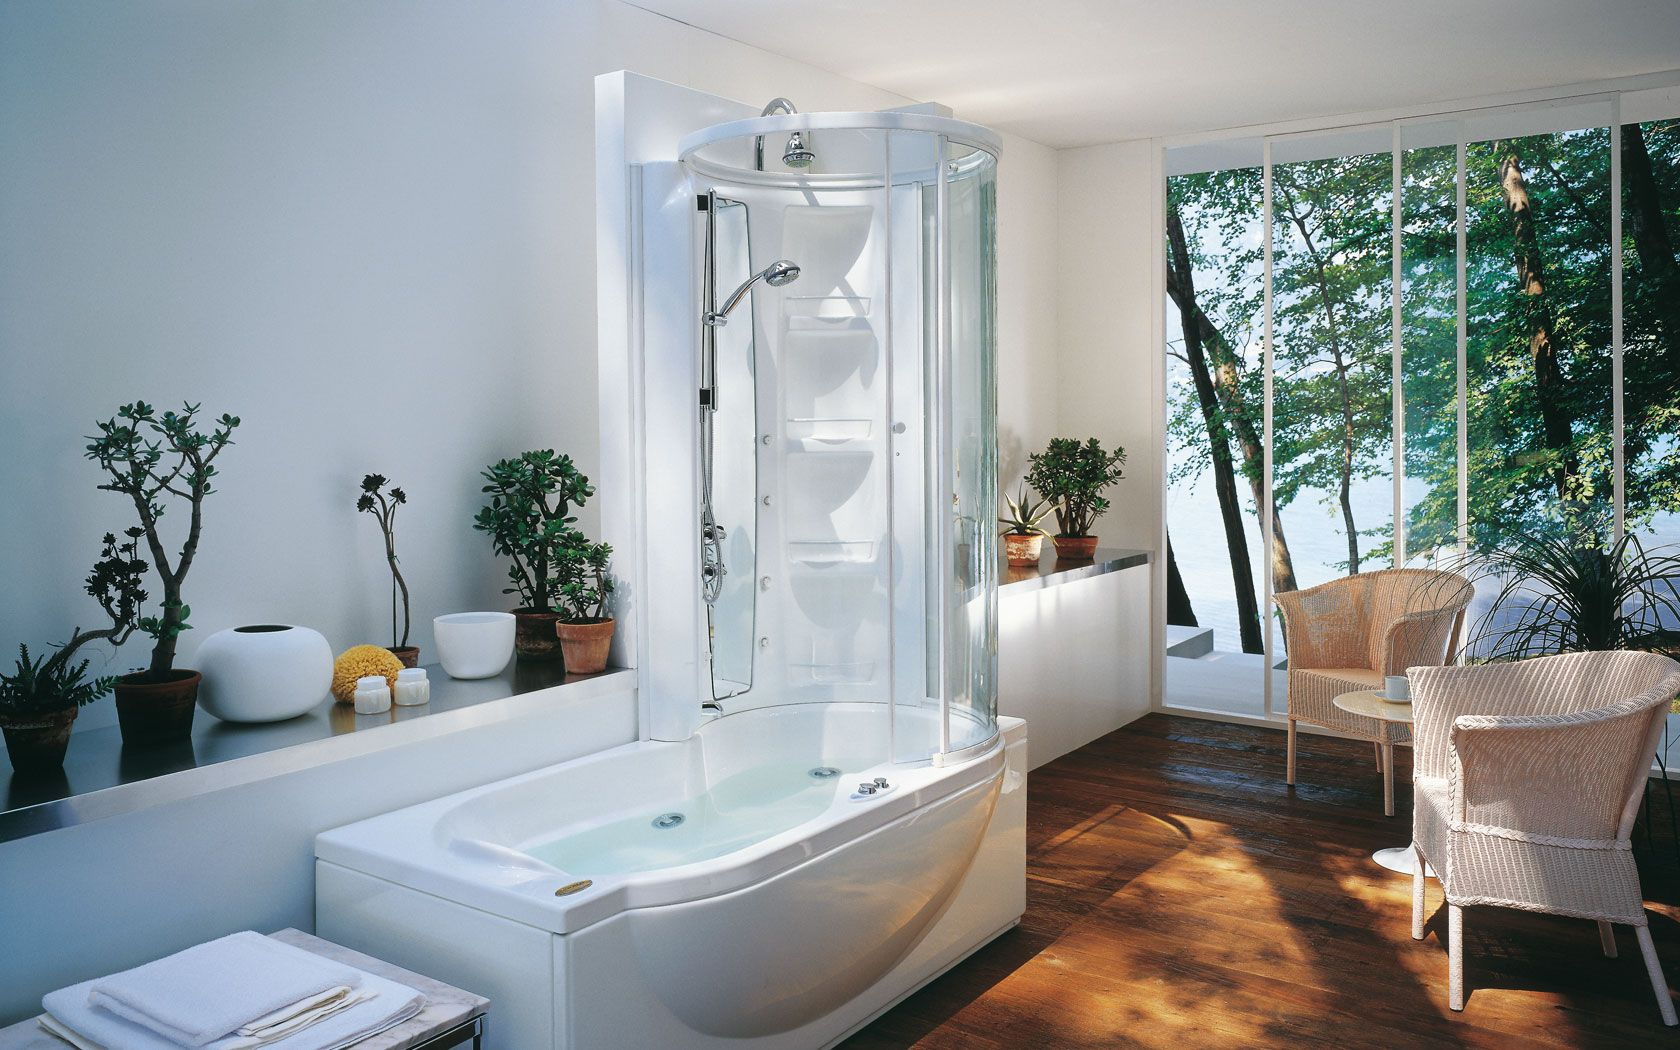 Amea twin premium - Jacuzzi Shower/ Tub Combo | Bathing Room Project ...